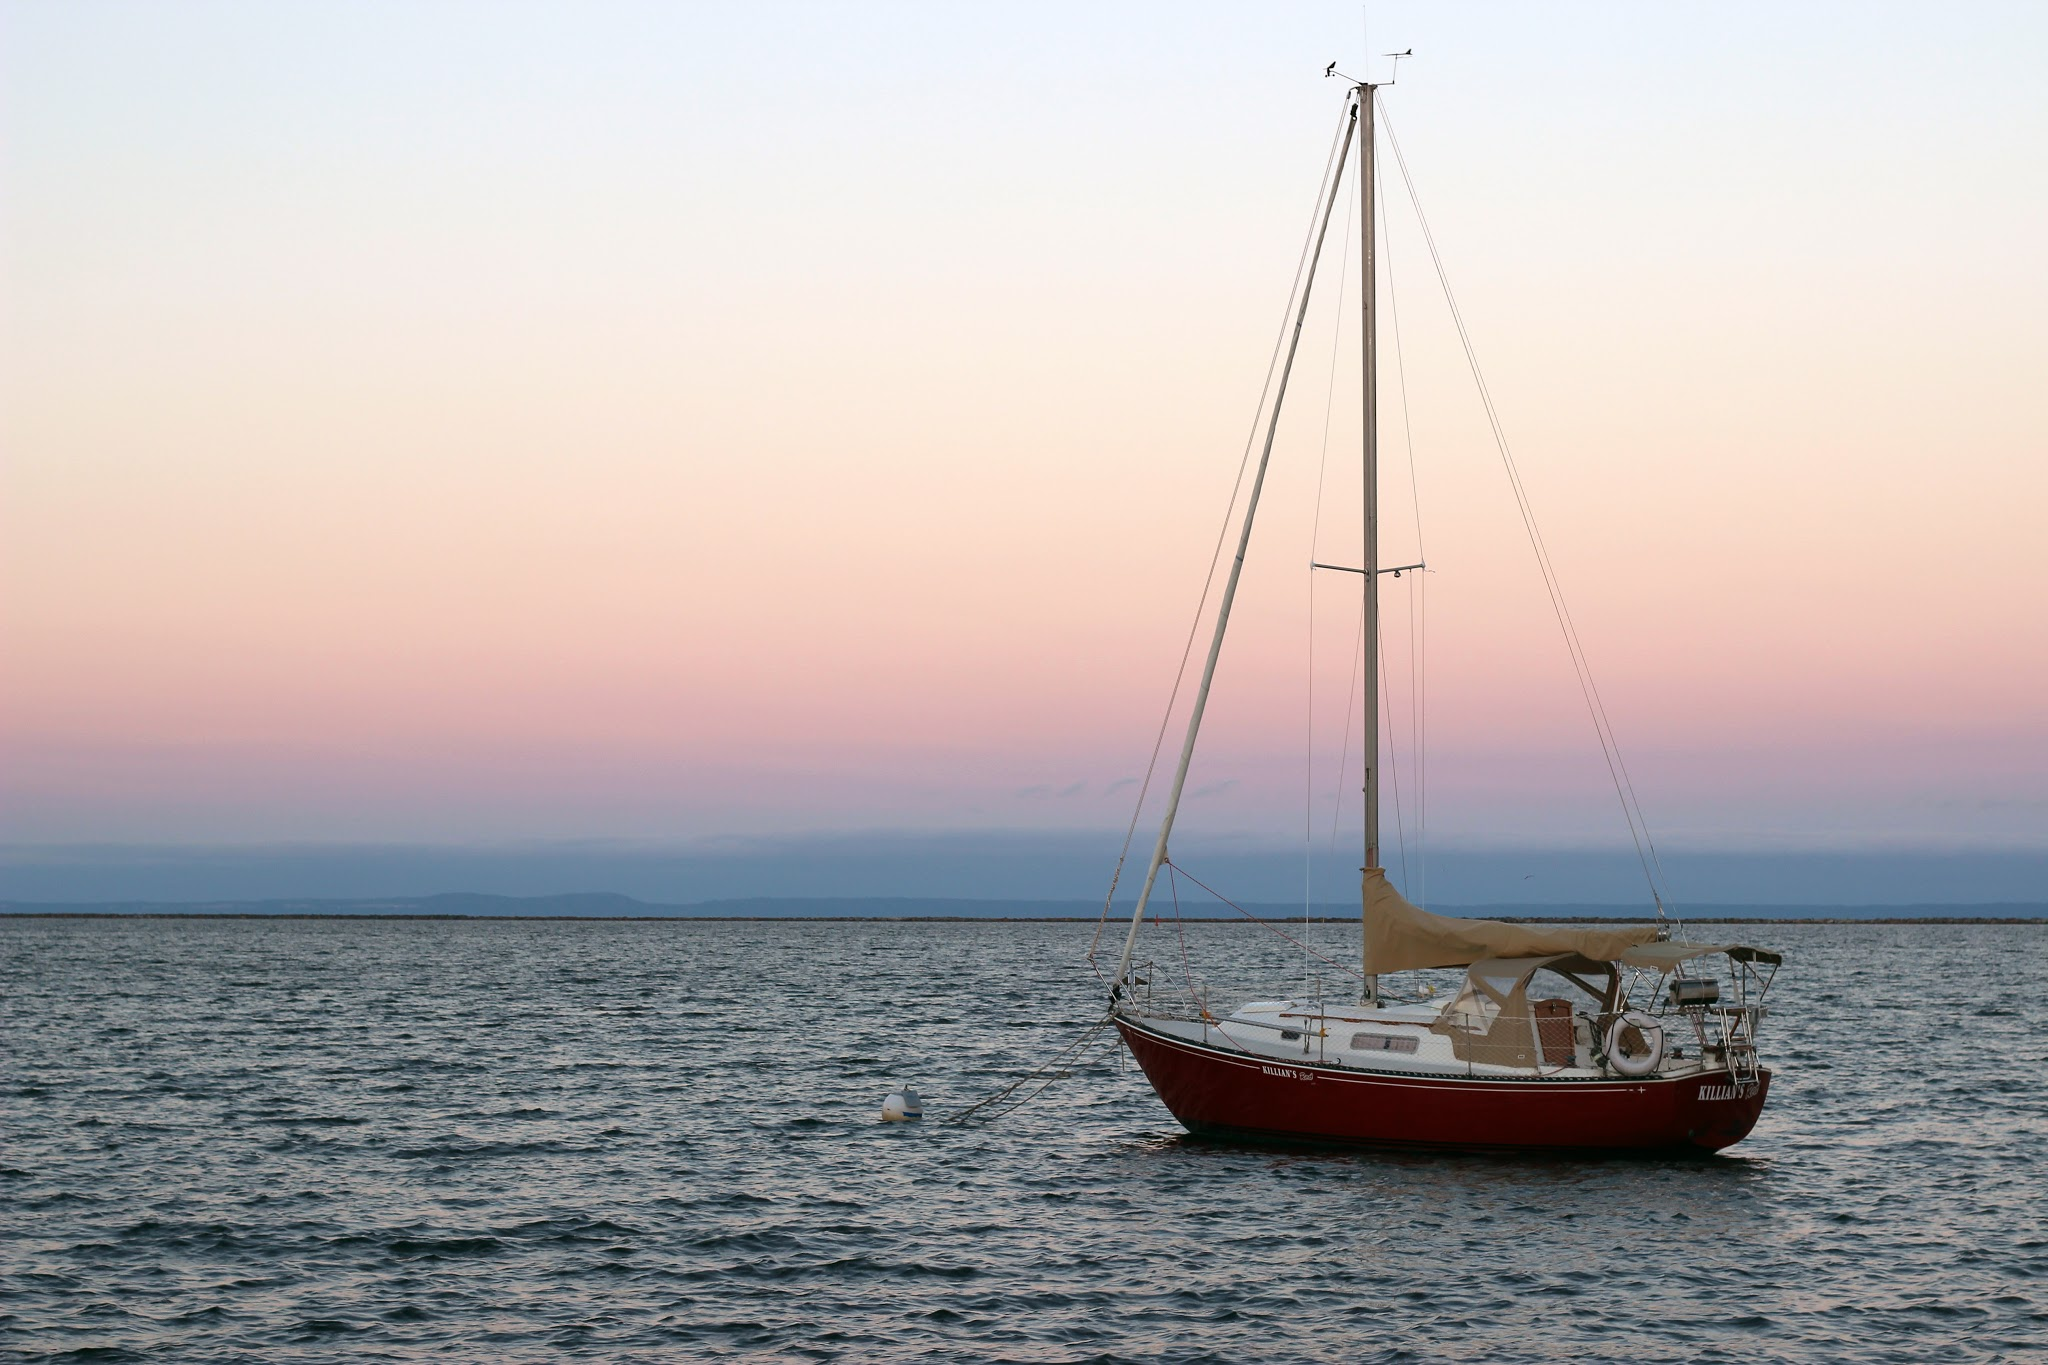 Sailboat on Lake Superior by Courtney Celley